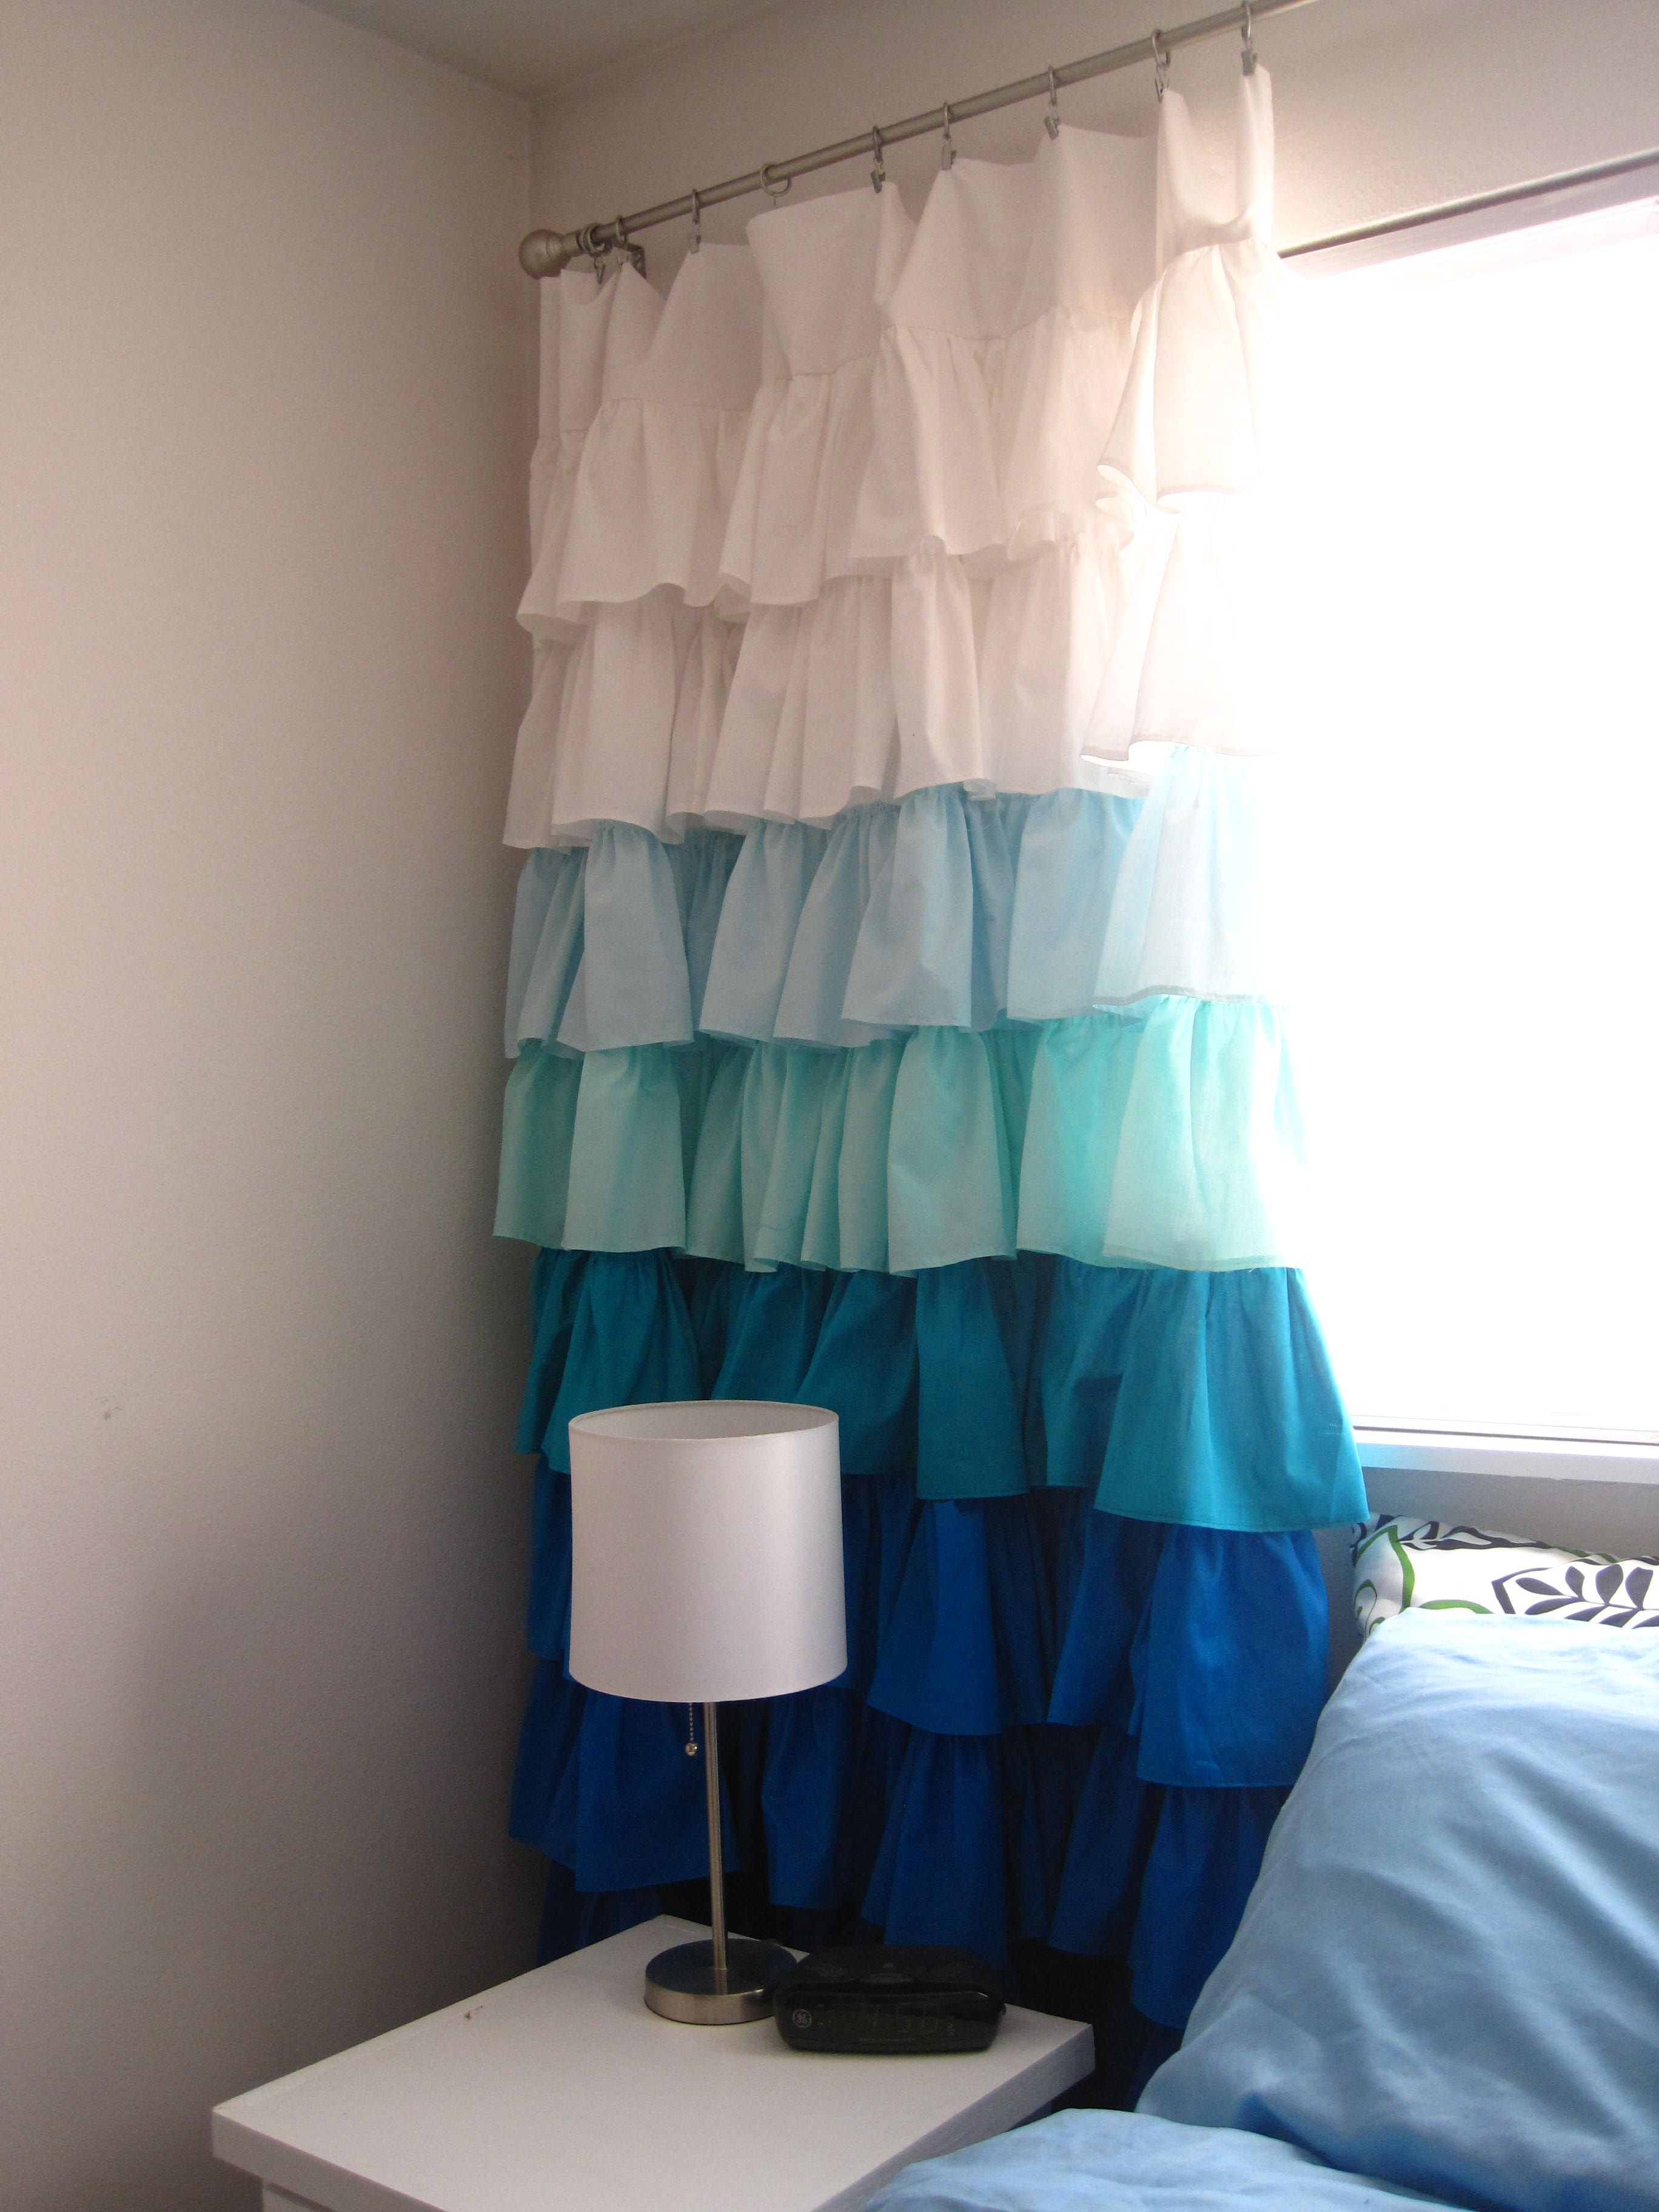 Cute Diy Curtains Would Love To Have Something Like This For Nursery Doorway